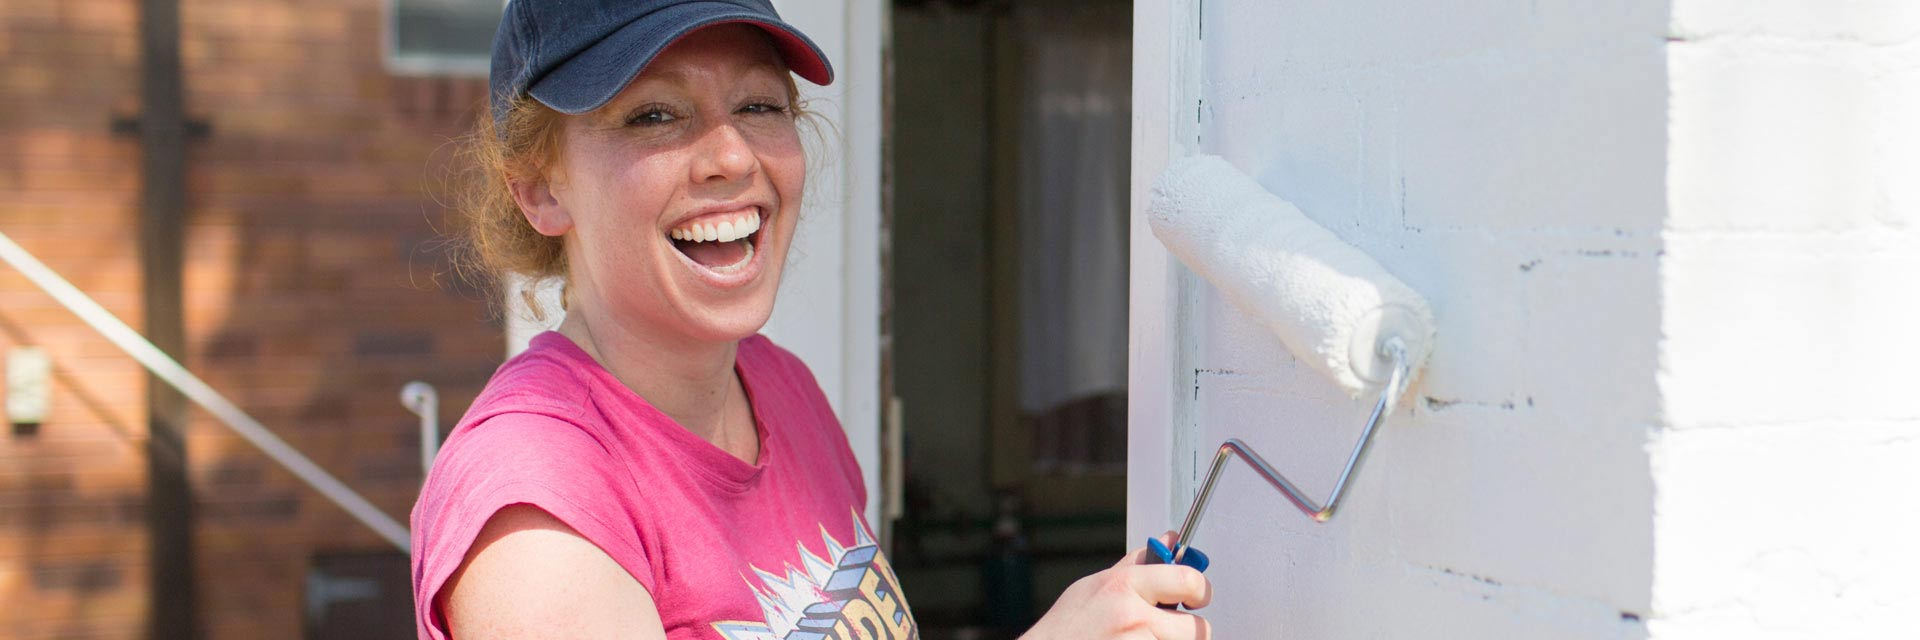 Corporate volunteer painting a wall with a roller